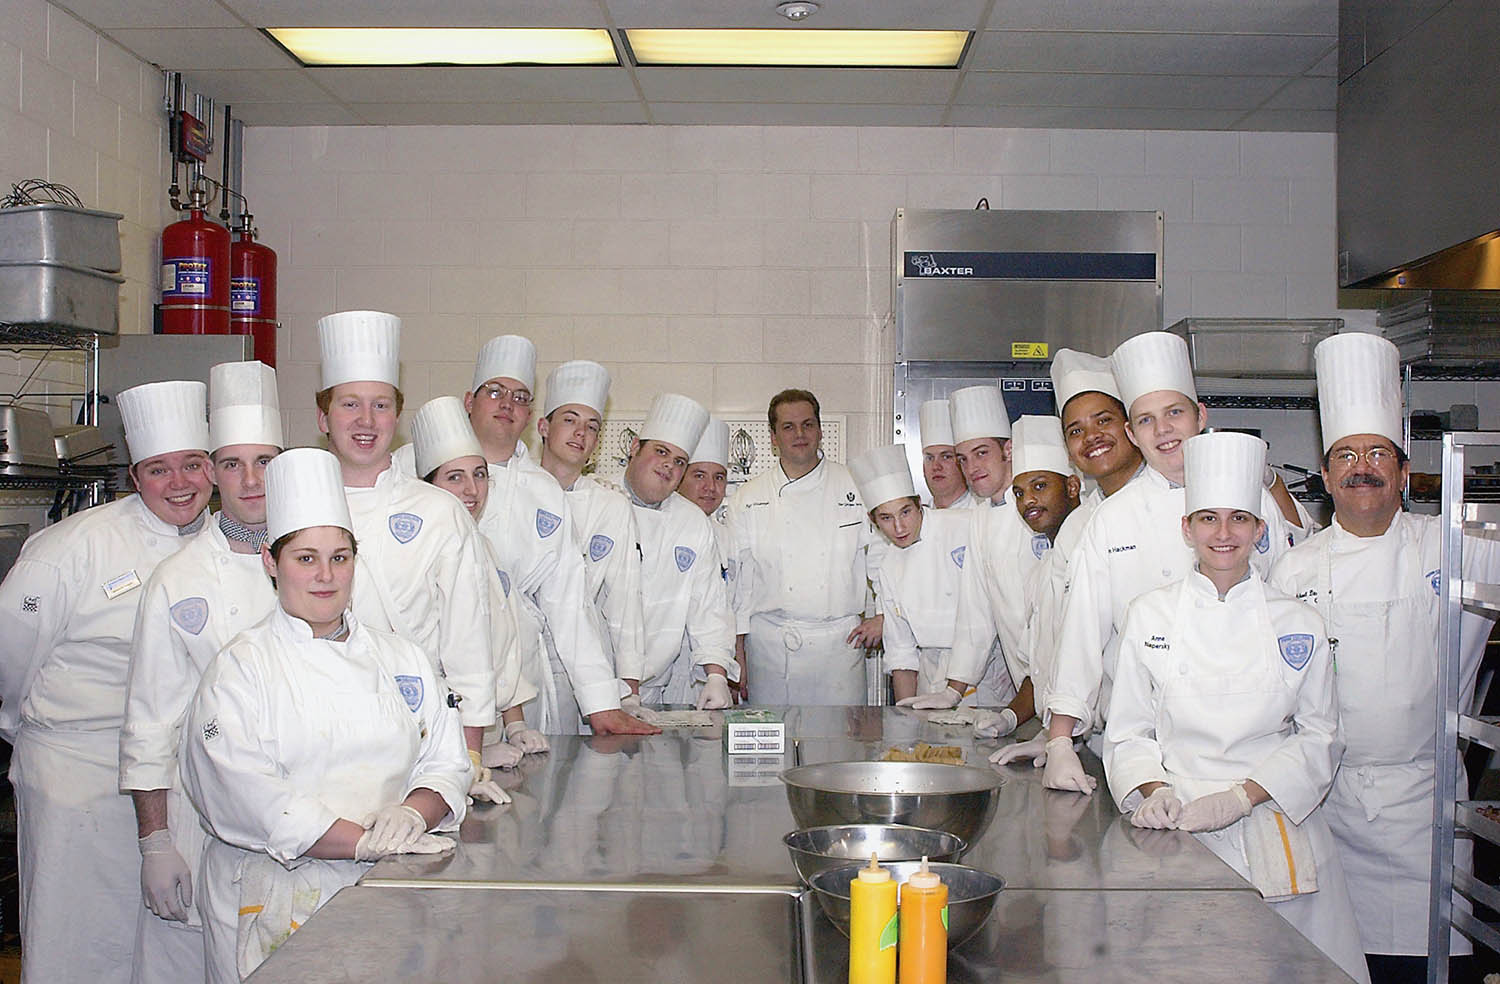 Students gather around Spring 2003 Visiting Chef Jeff Vosburgh, then-executive chef of Georgian Terrace Hotel. Photo by Cindy Davis Meixel.